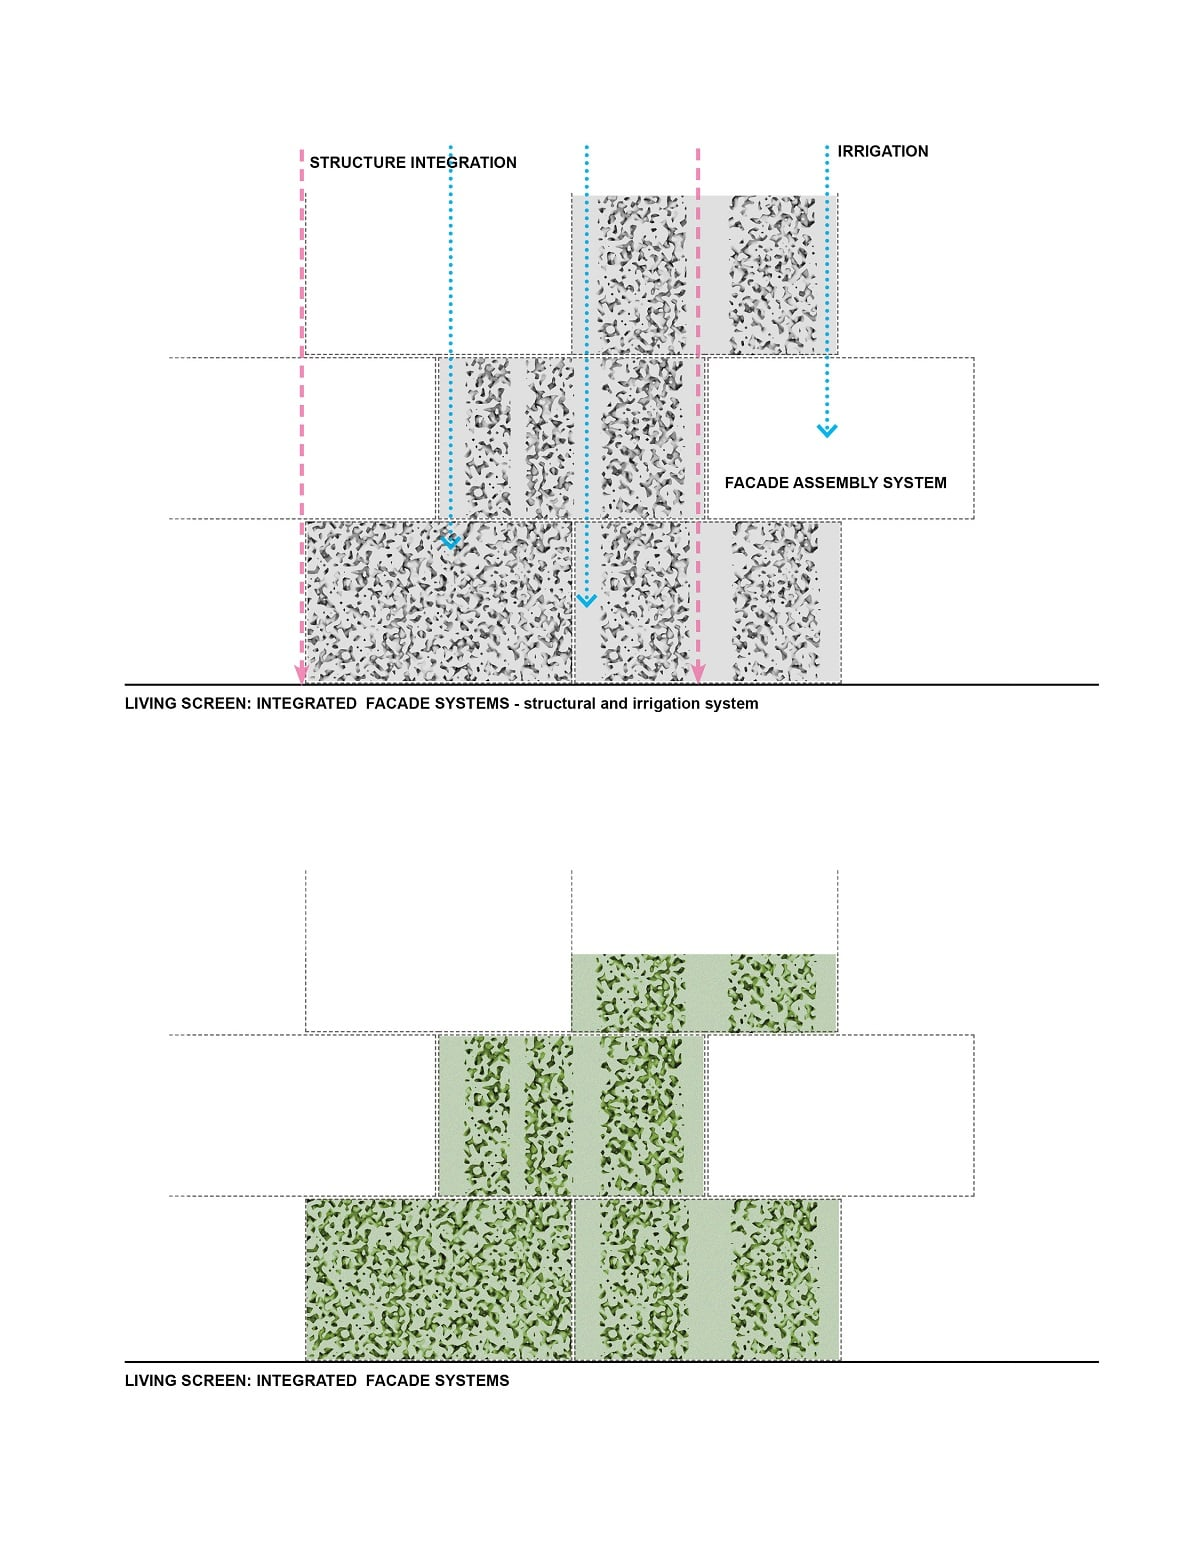 Paneling System of Biomorphic Living Screen from Inocente and Koliji - ECO URBAN Green Building